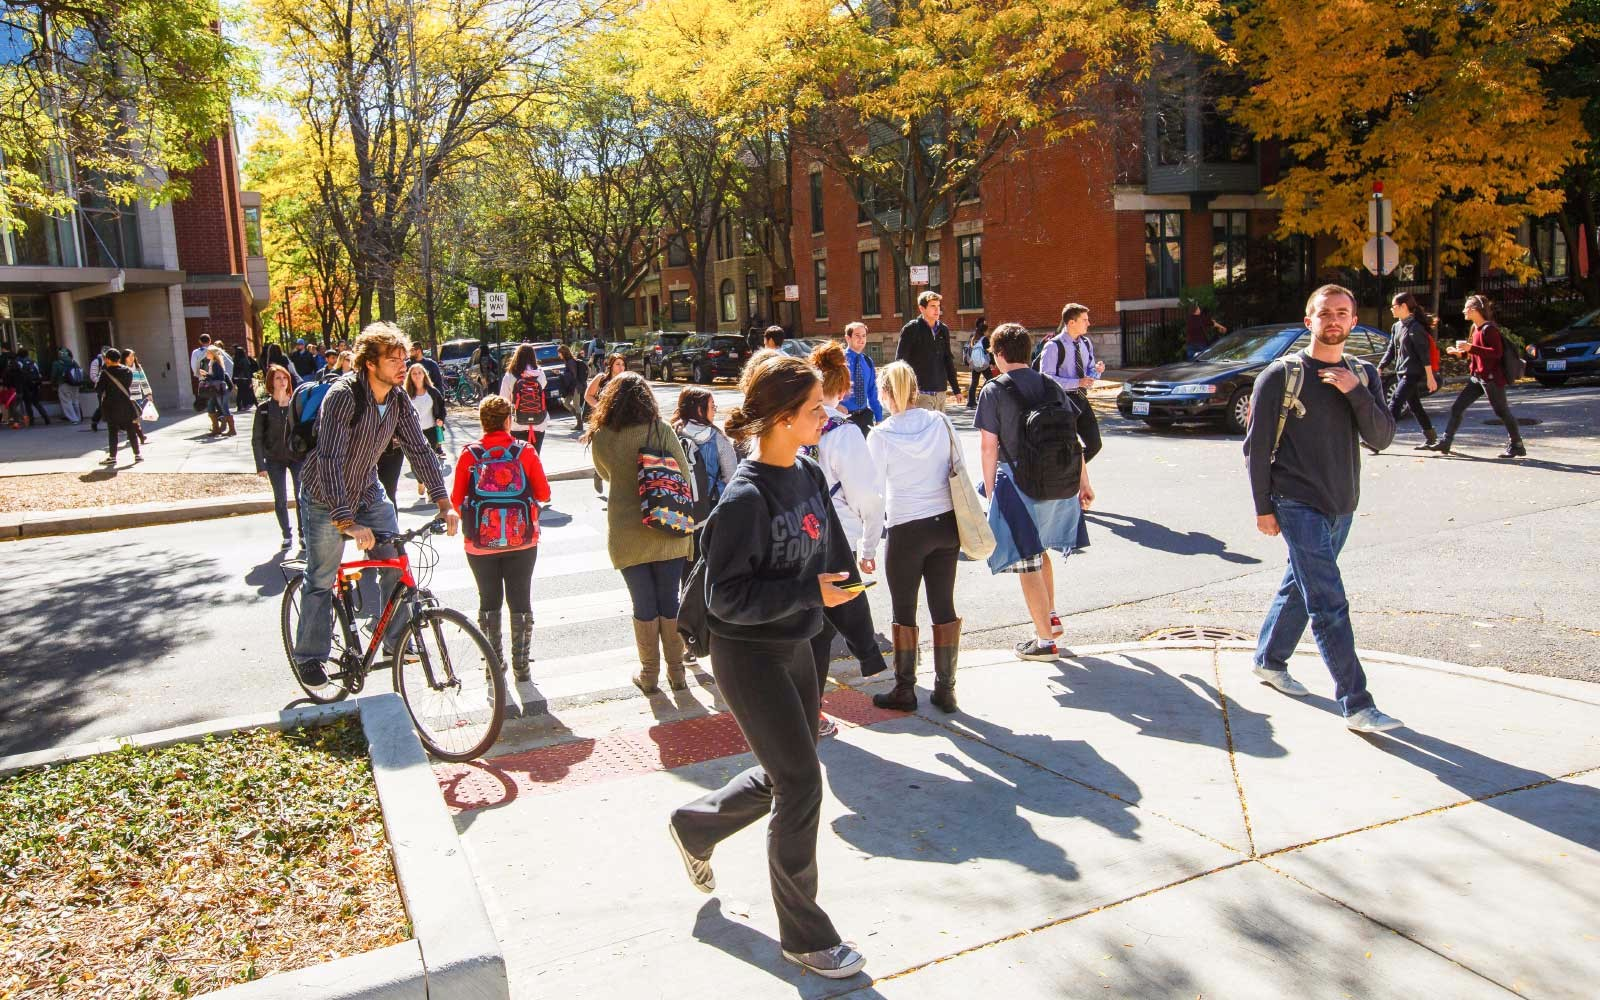 Students walking in the Lincoln Park campus.